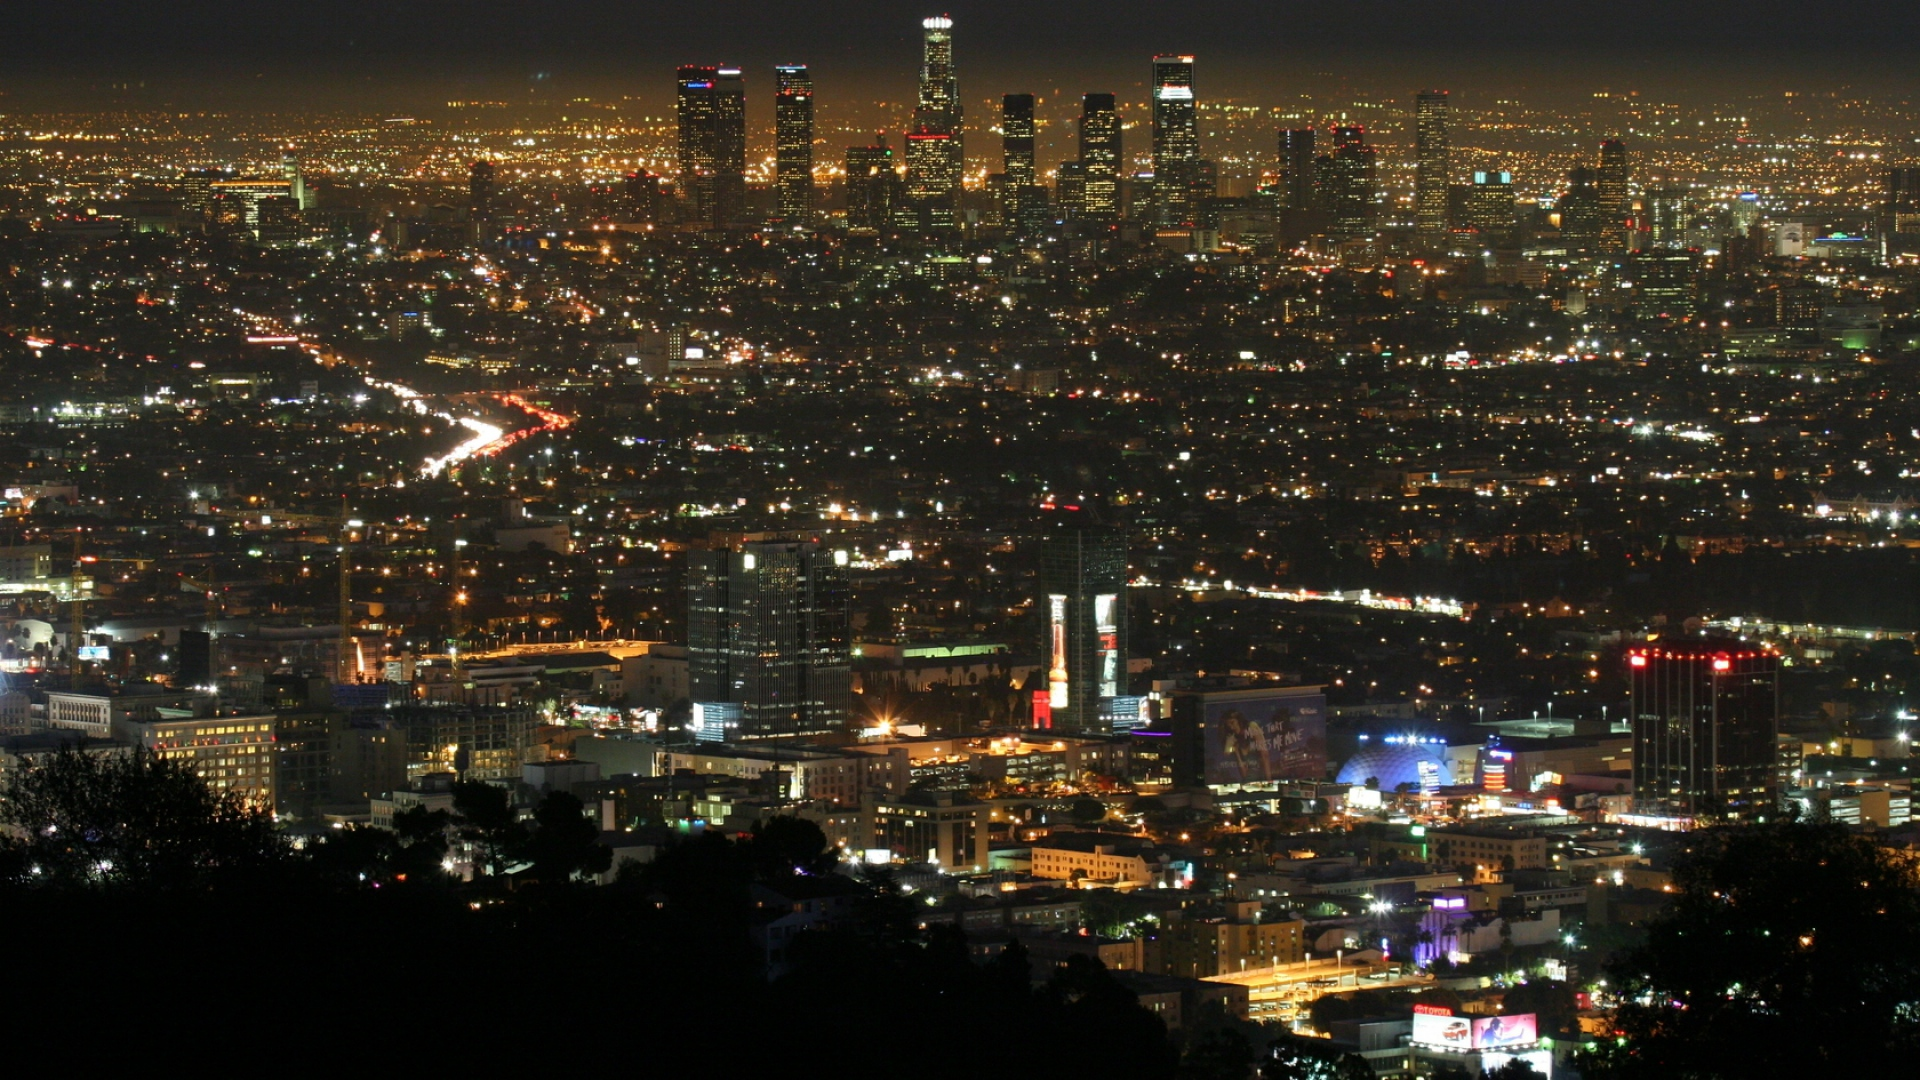 Fantastic Wallpaper Night Los Angeles - los_angeles_night_view_top_view_58639_1920x1080  Photograph-423171.jpg